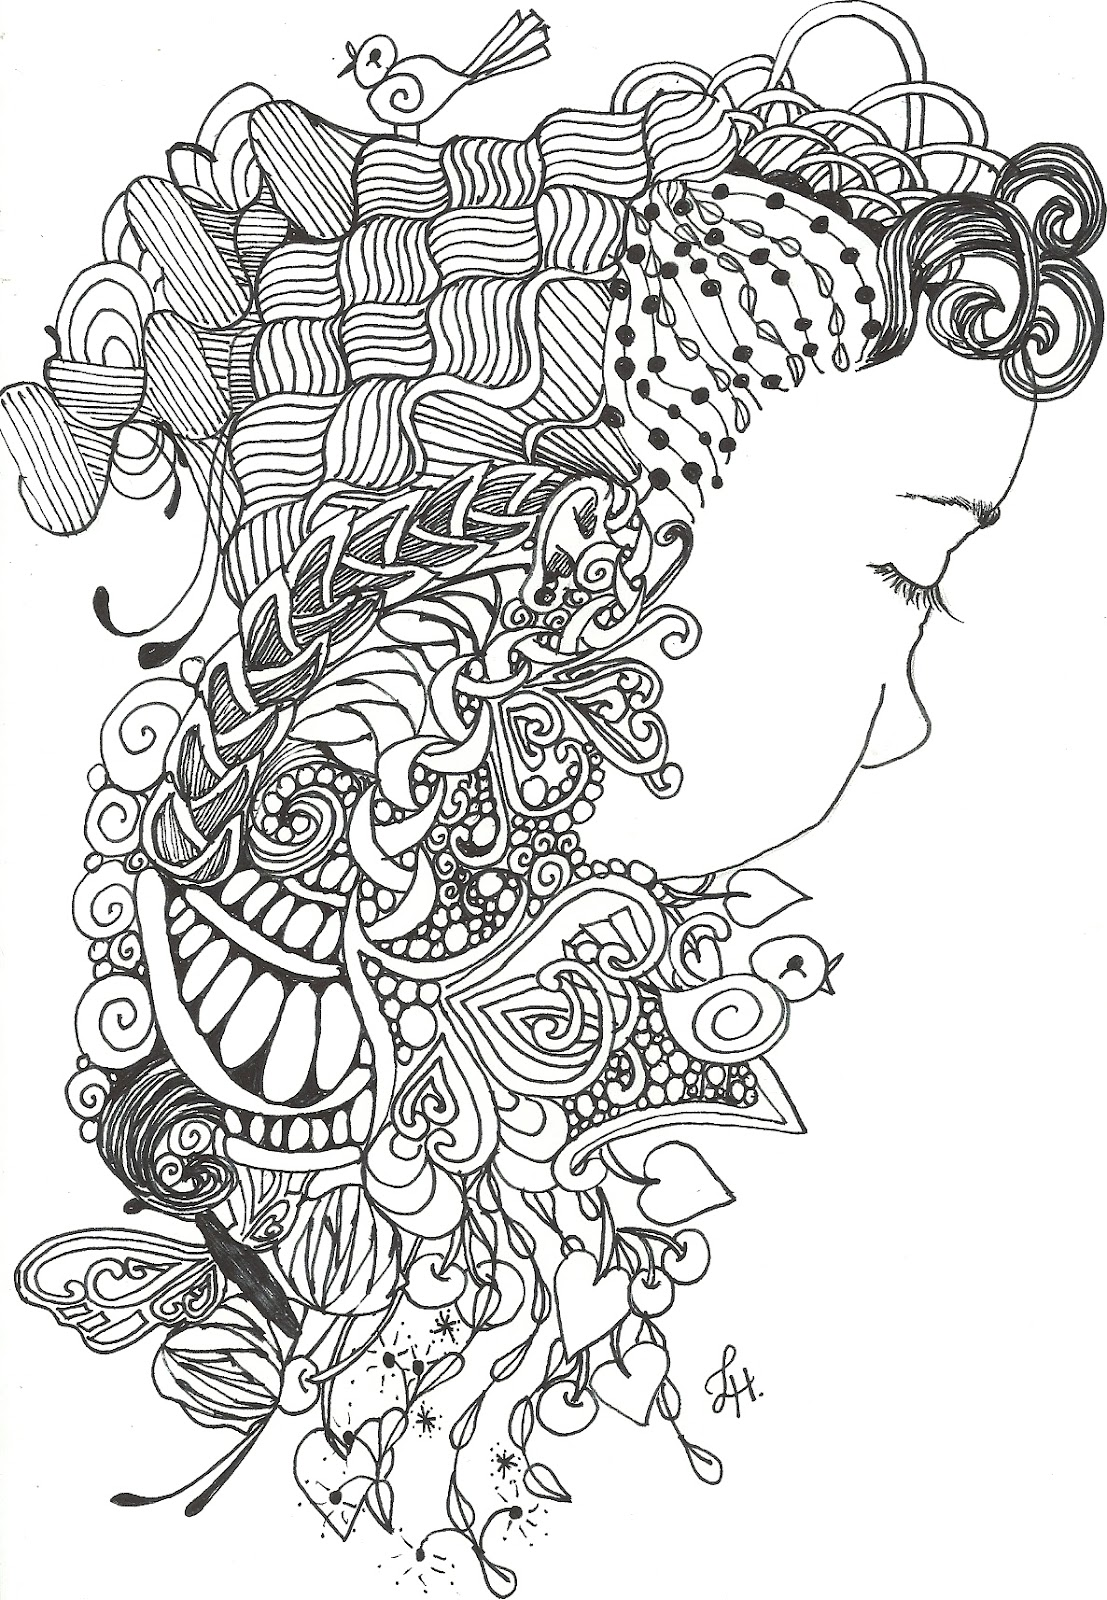 lorene digital diva another zentangle inspired art and a like me